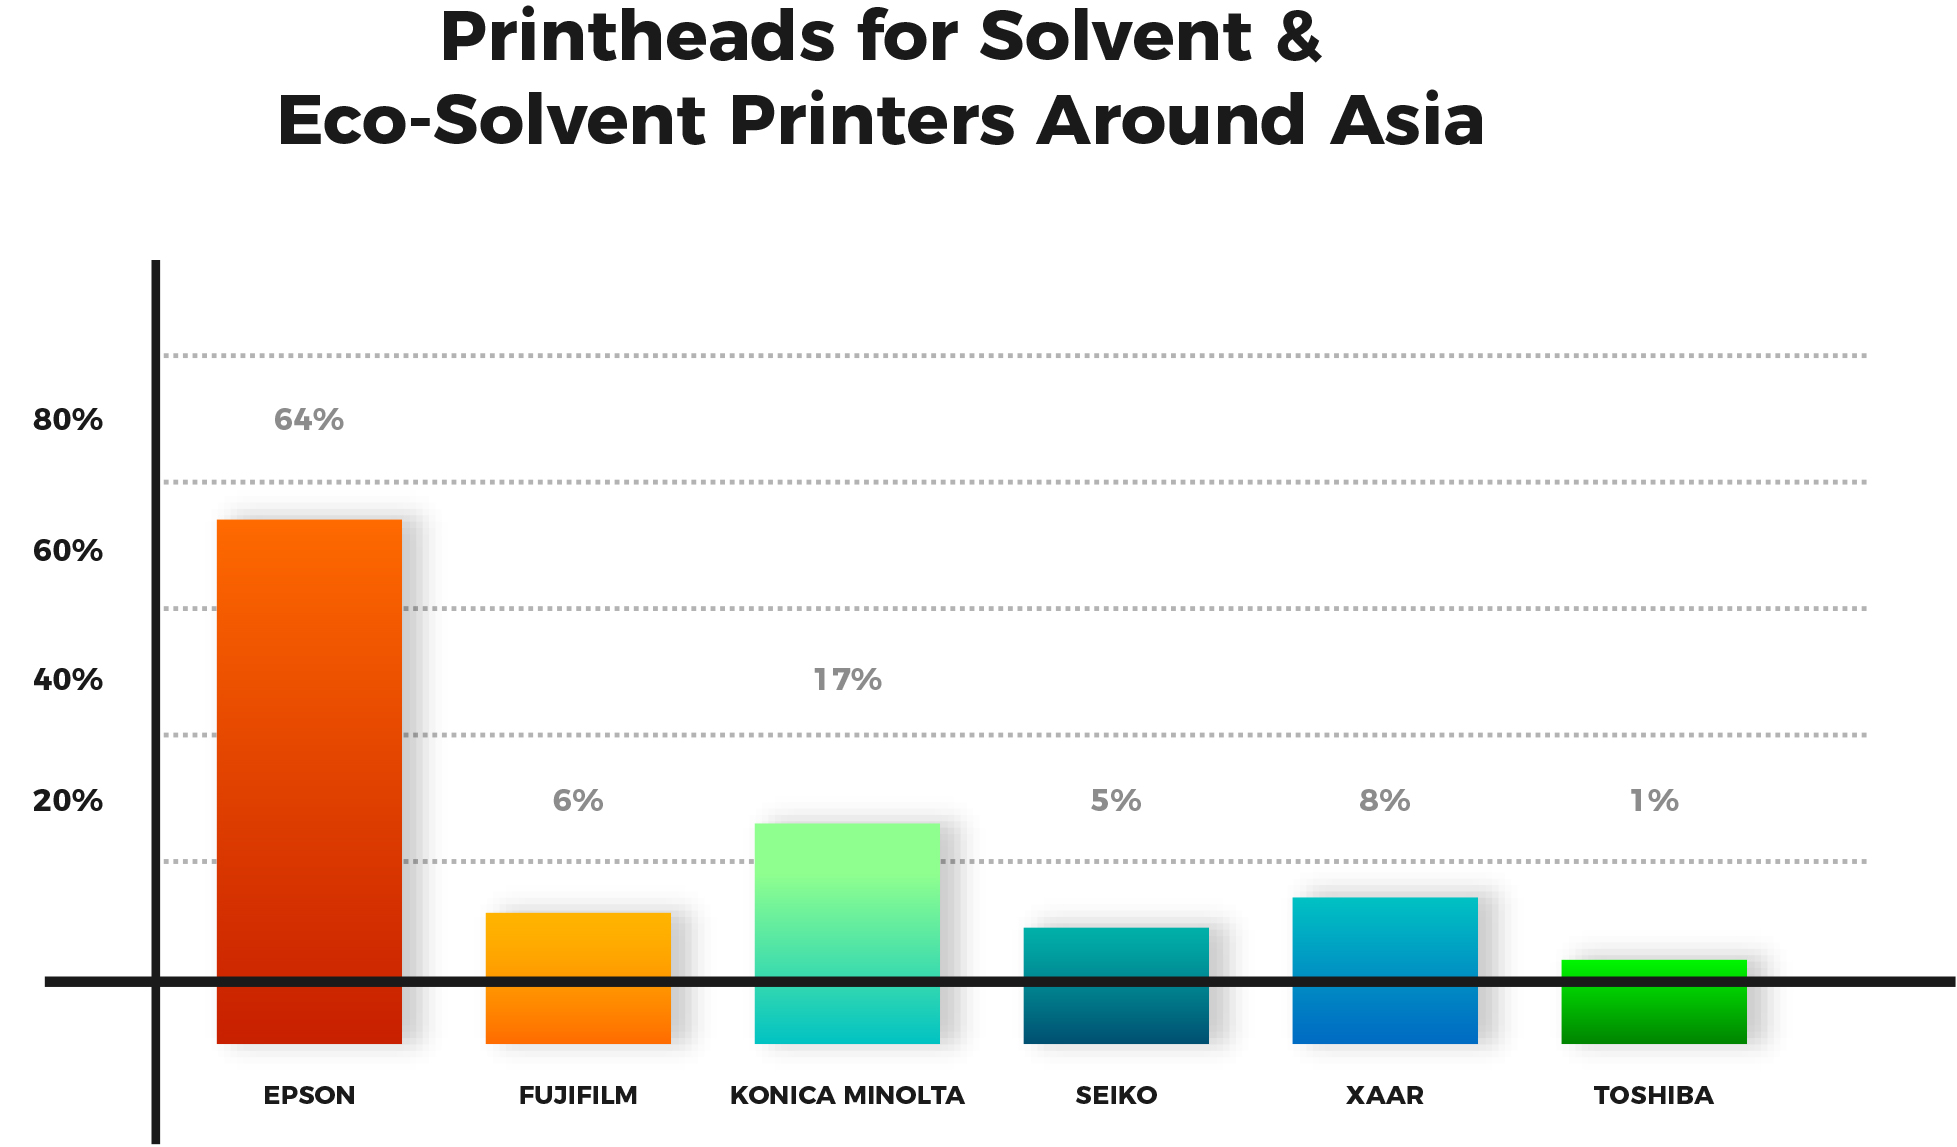 Printheads-for-Solvent-&-Eco-Solvent-Printers-Around-Asia